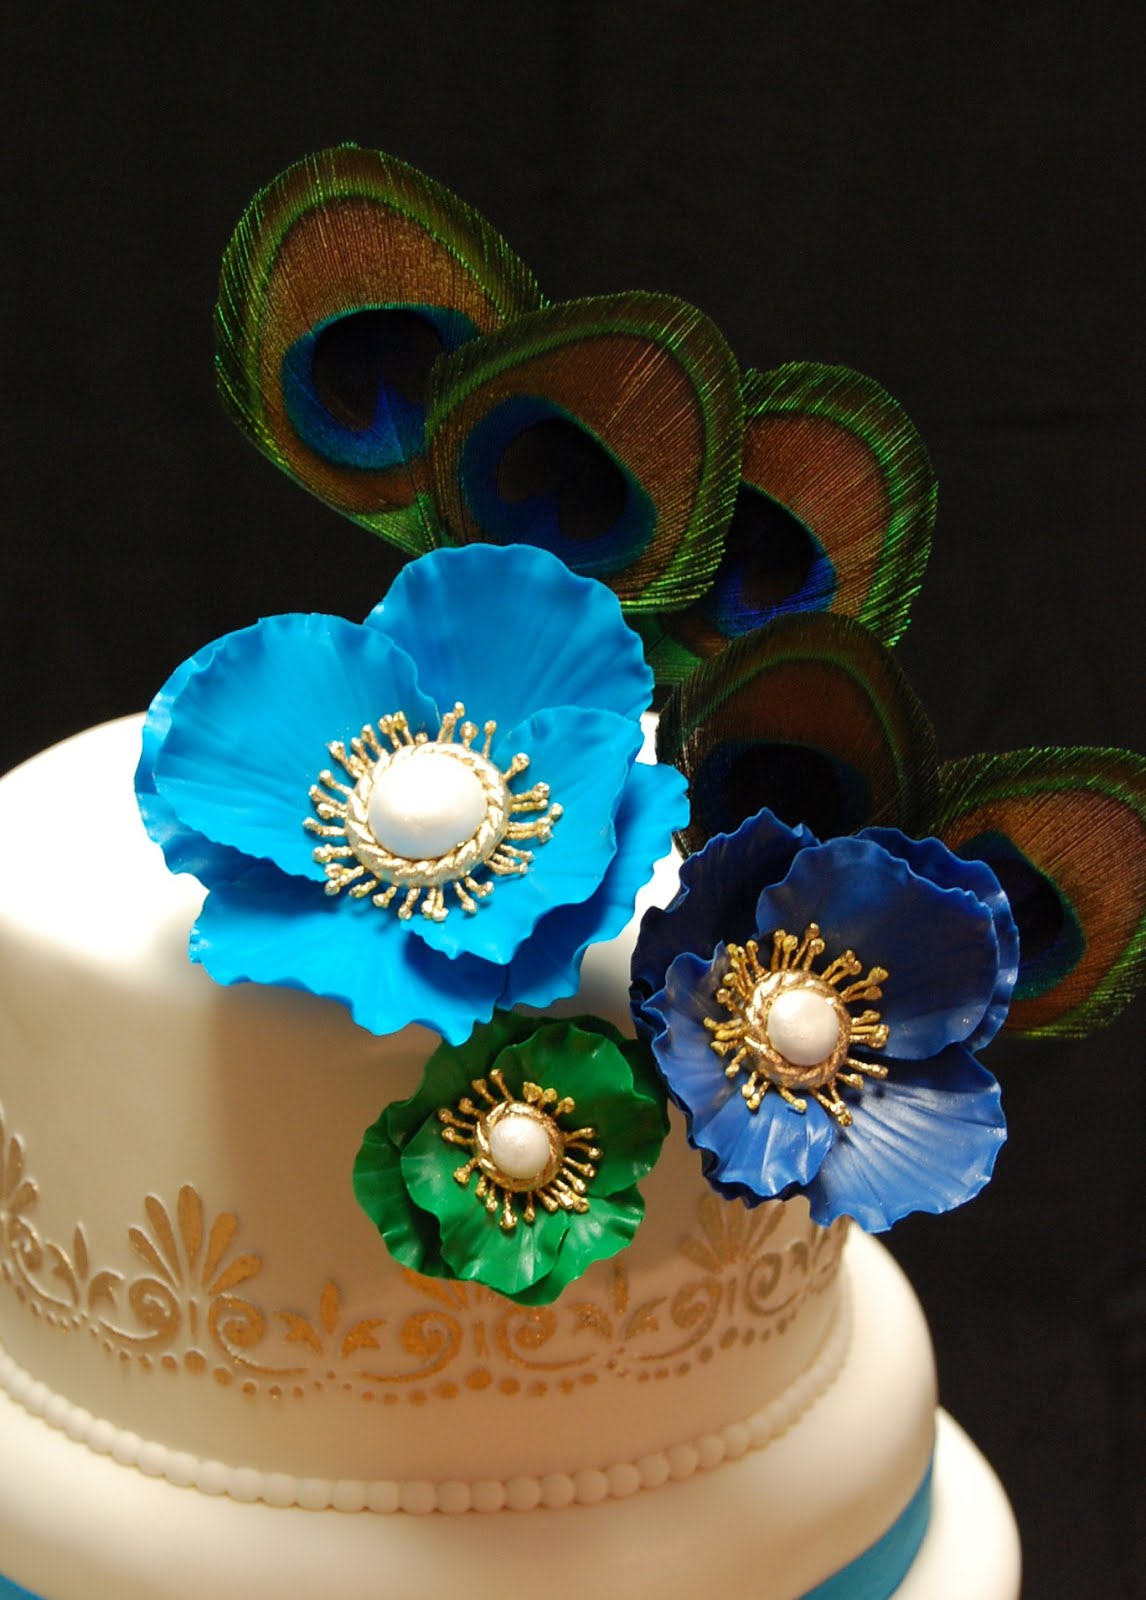 Pin Peacock Themed Desserts Picture Cake on Pinterest